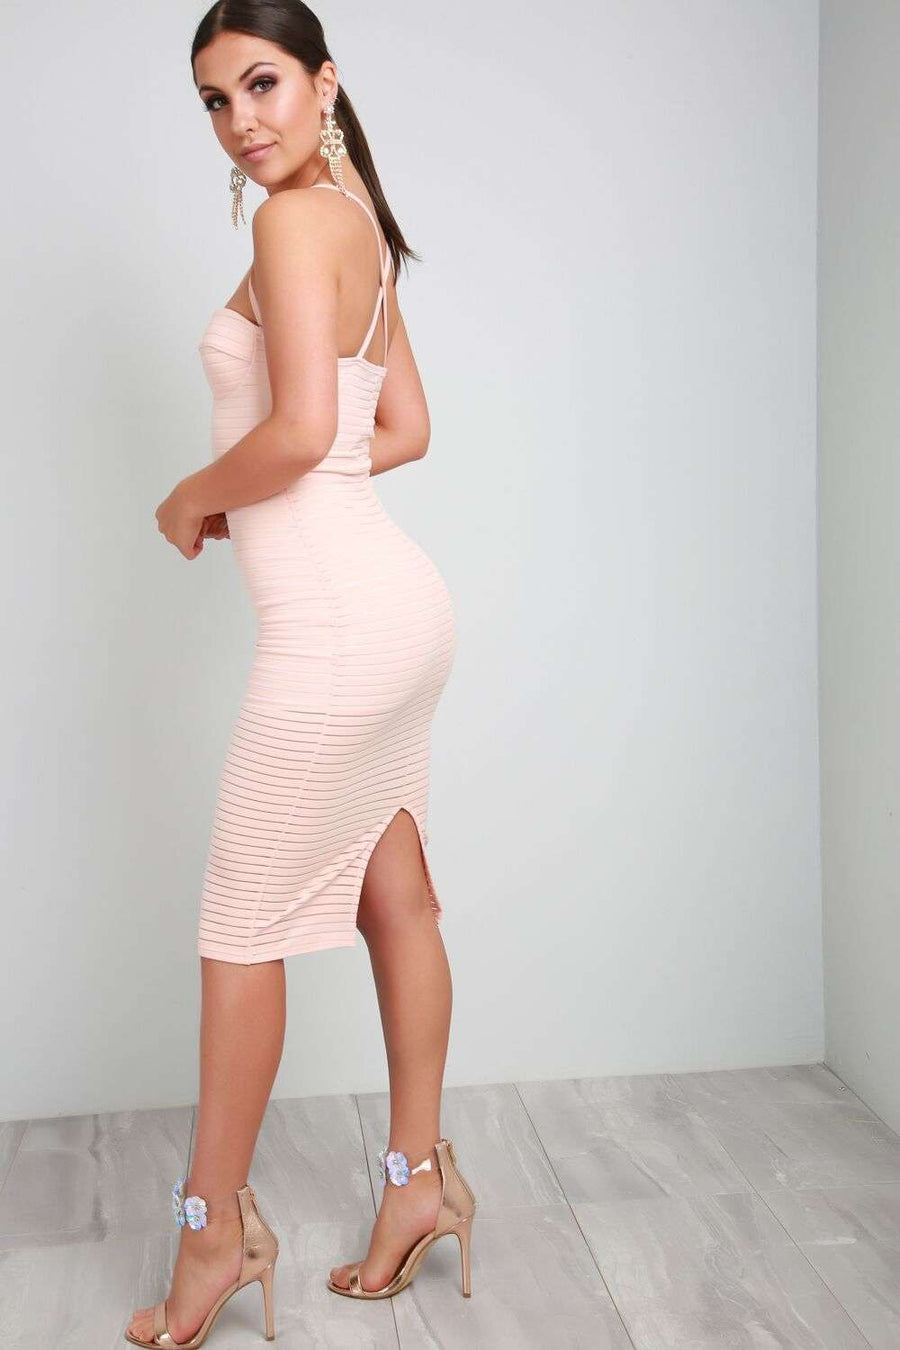 Khloe Racer Back Bodycon - bejealous-com